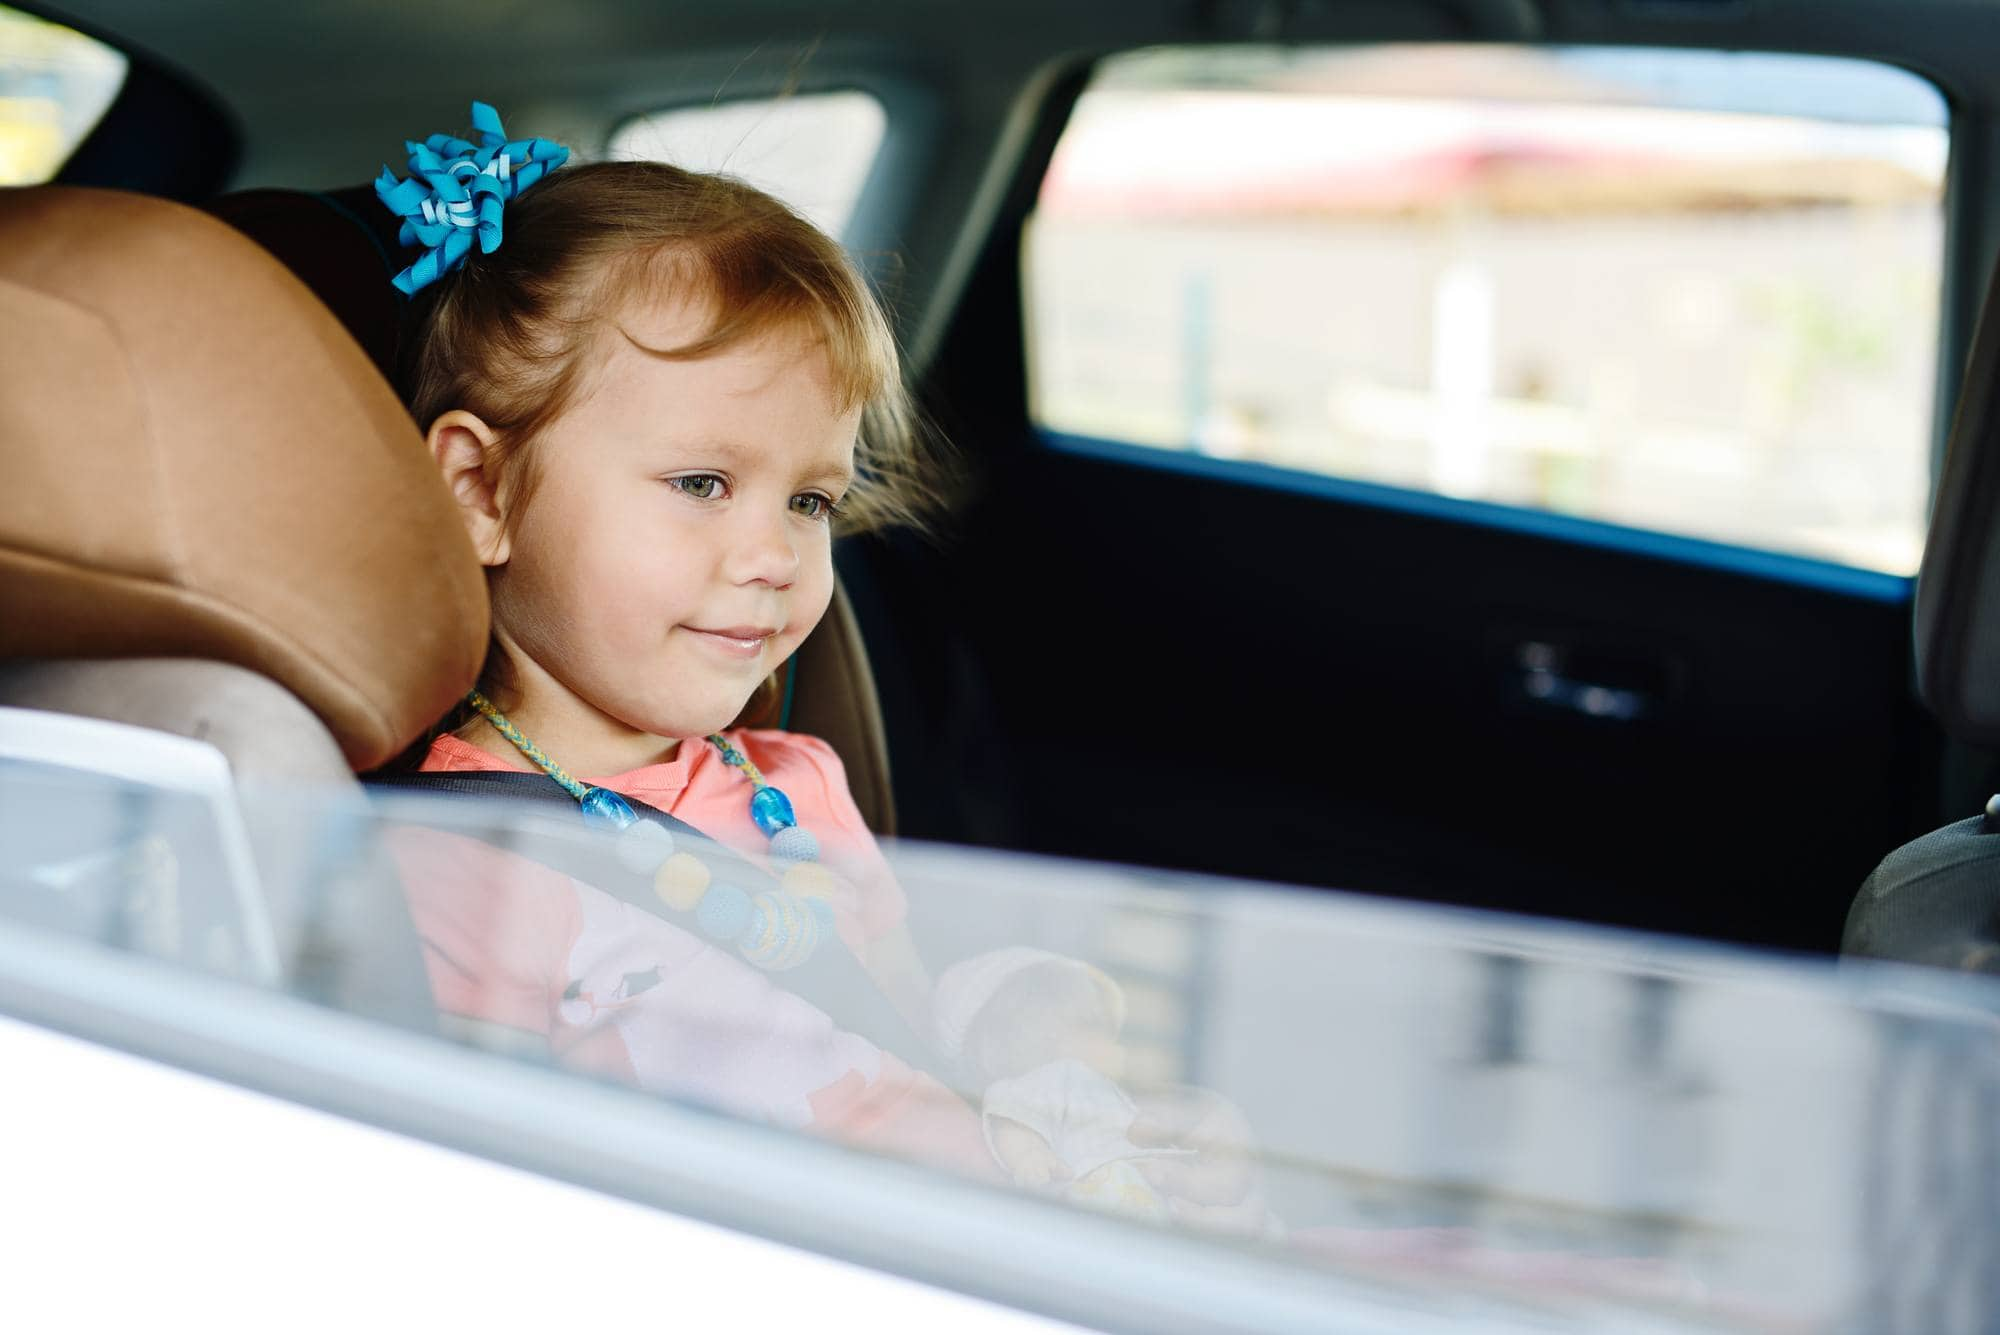 Opening a window in a car can help relieve motion sickness for some kids